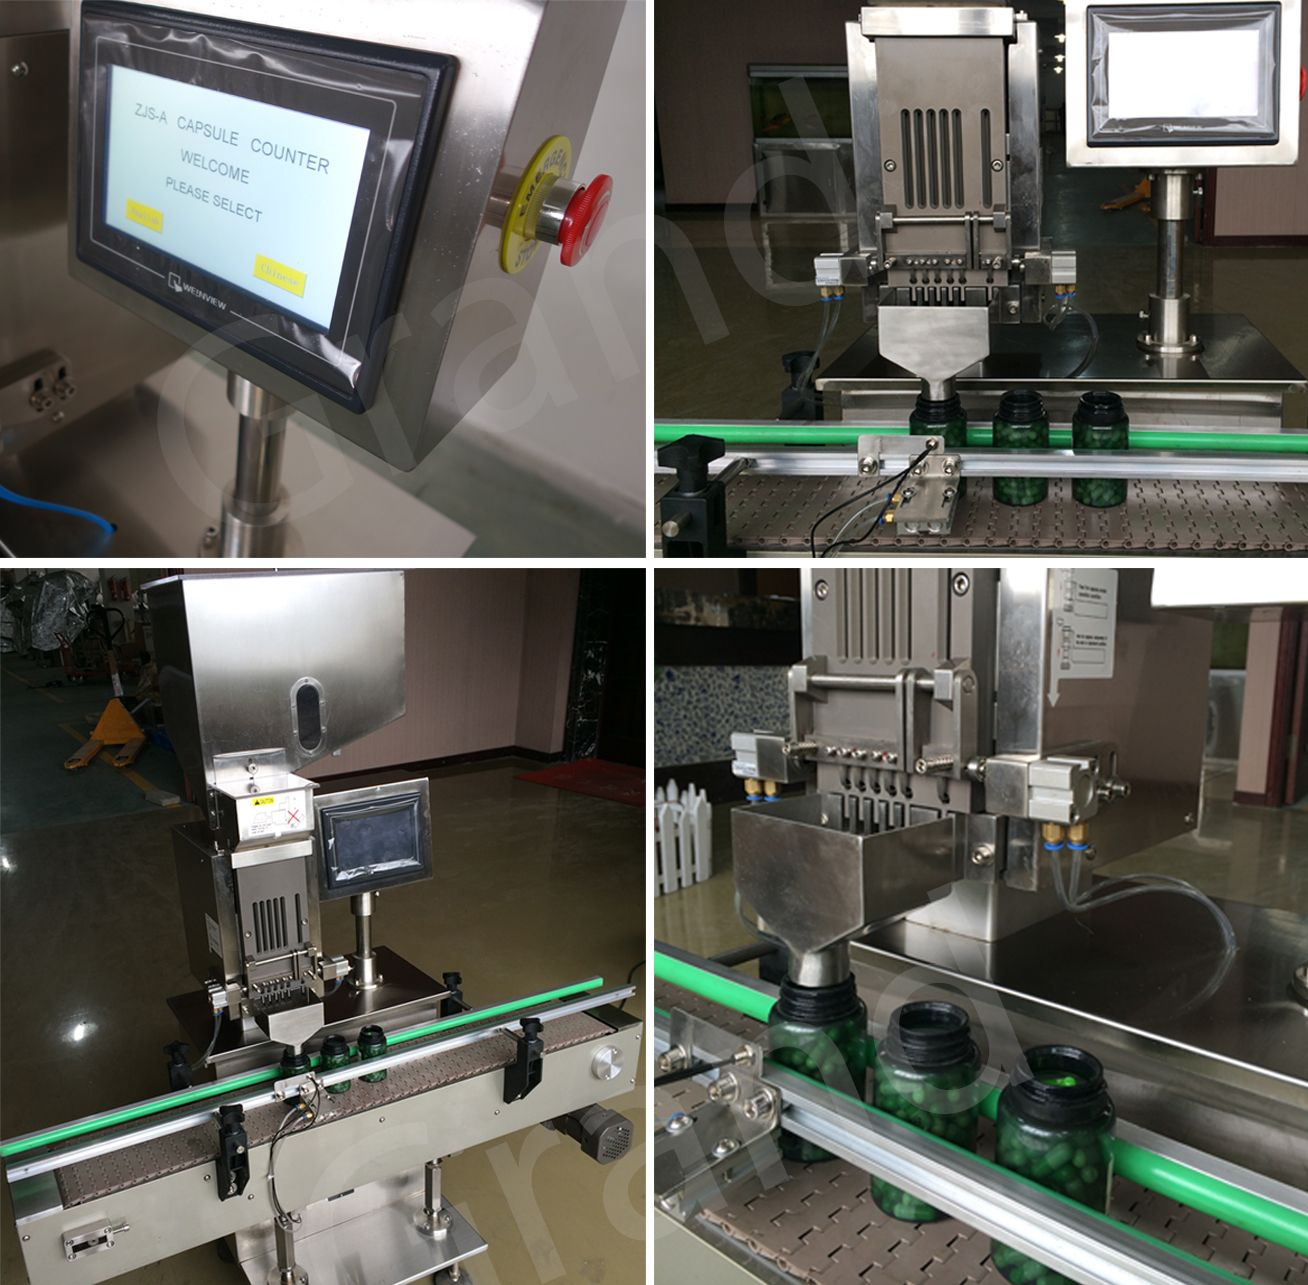 Capsule Counting Machine Capsule Counting And Filling Machine Tablet And Capsule Counting Machine Blister Packing Machine Counter Product Packaging Machine